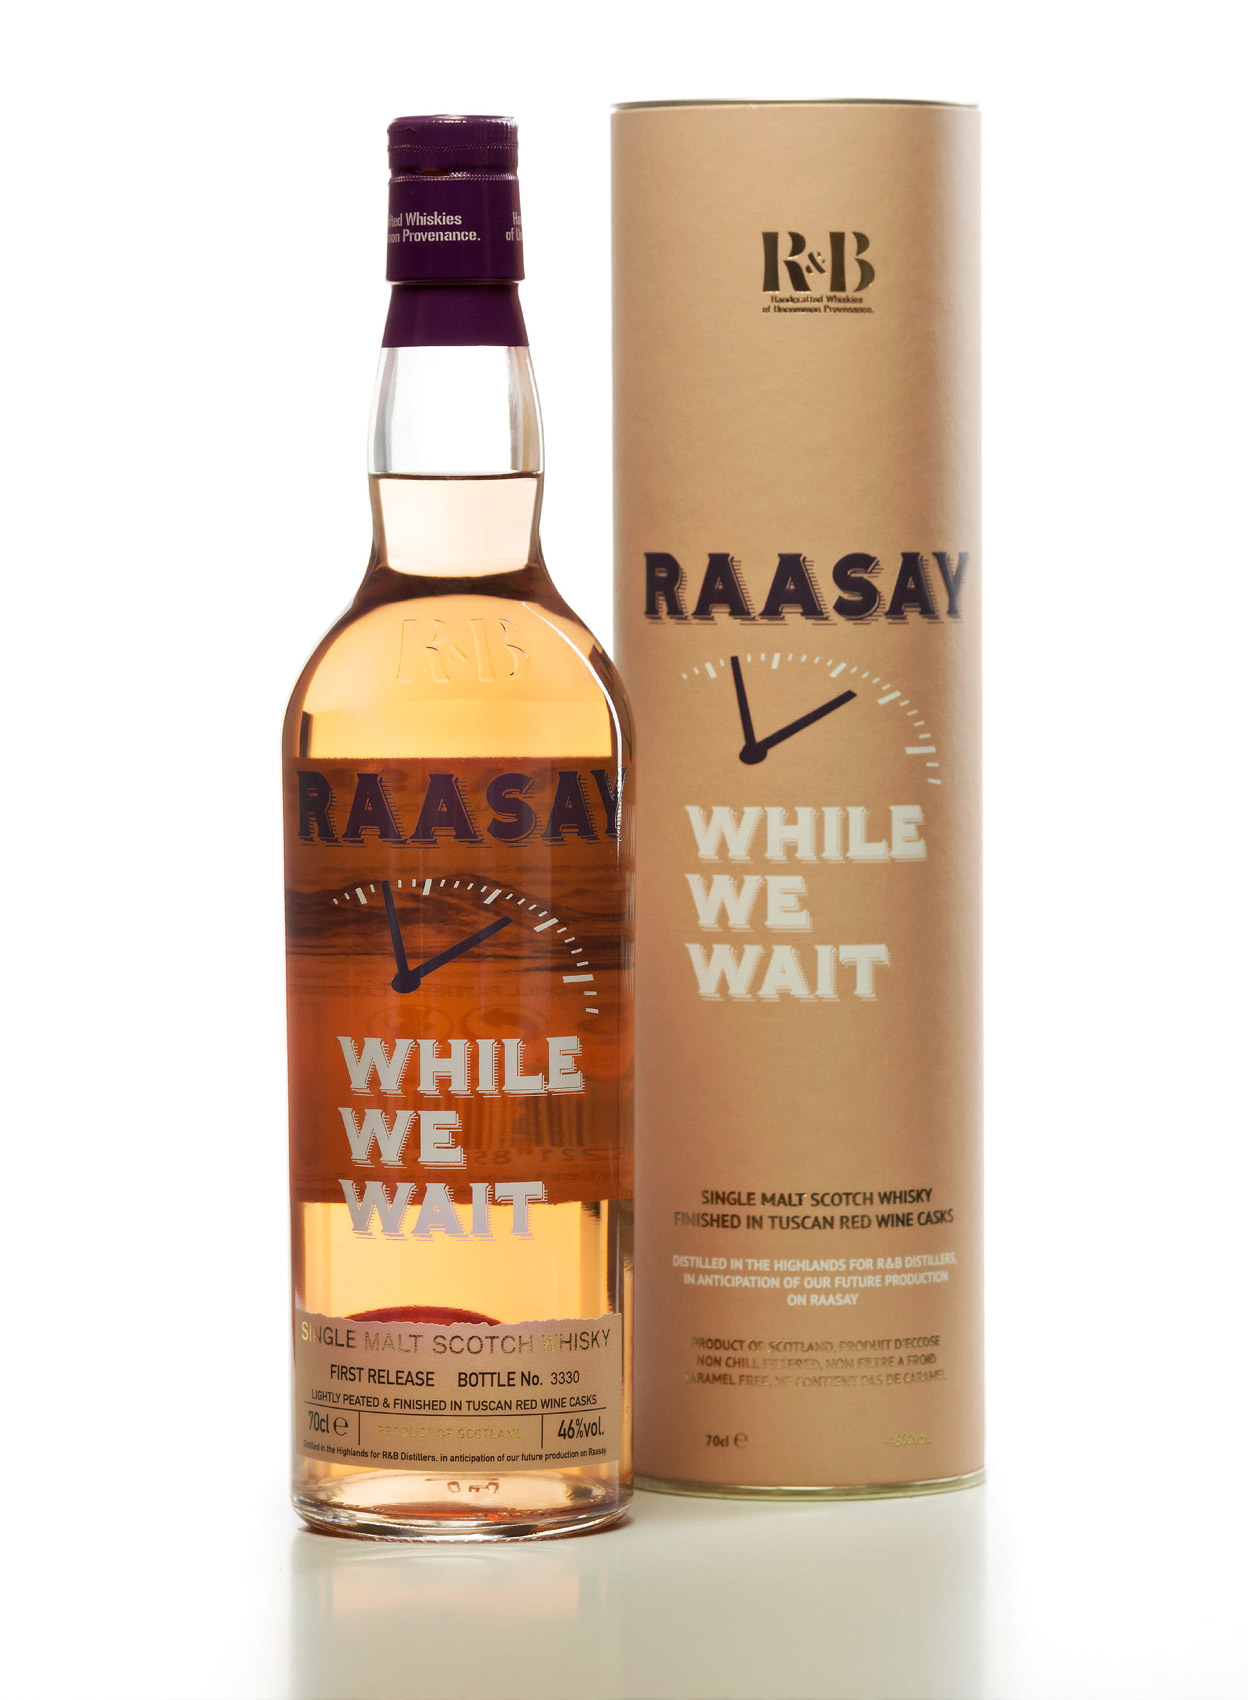 Time to Raise Your Glasses to Mark two Distinctive New Whiskies by R&B Distillers 6